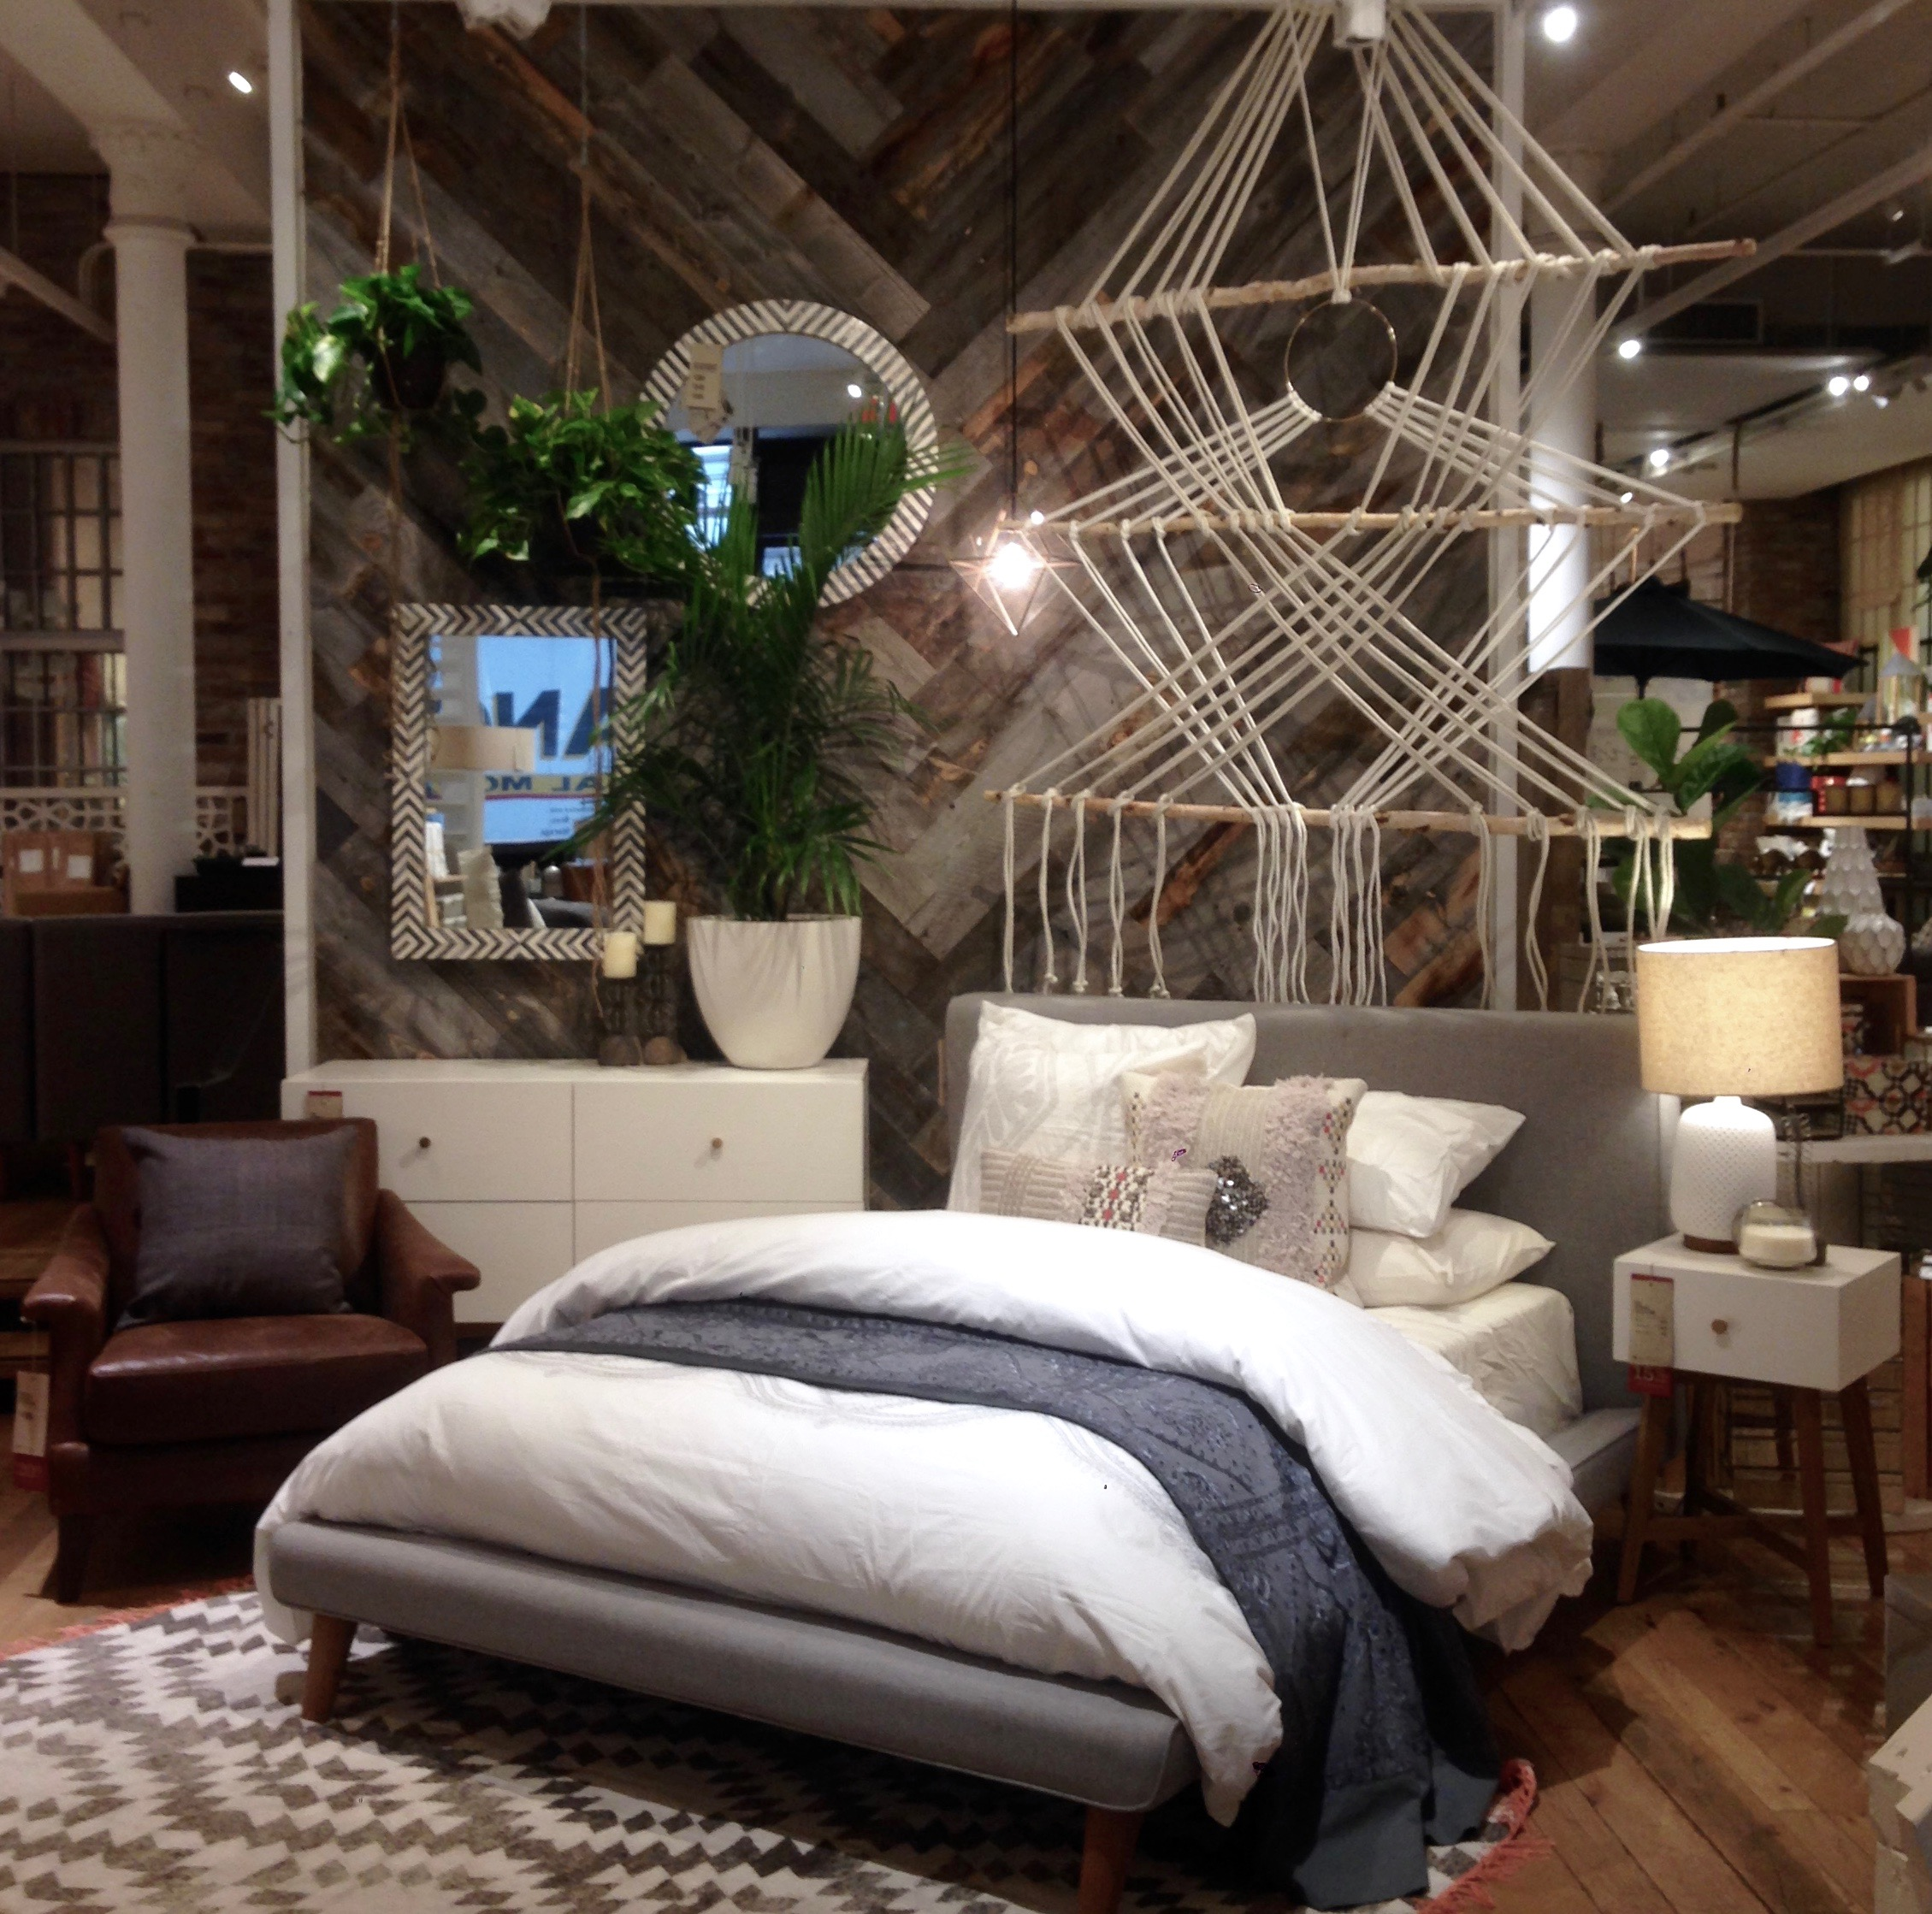 Macramé Wall Art // West Elm // Chelsea, NY // 2014